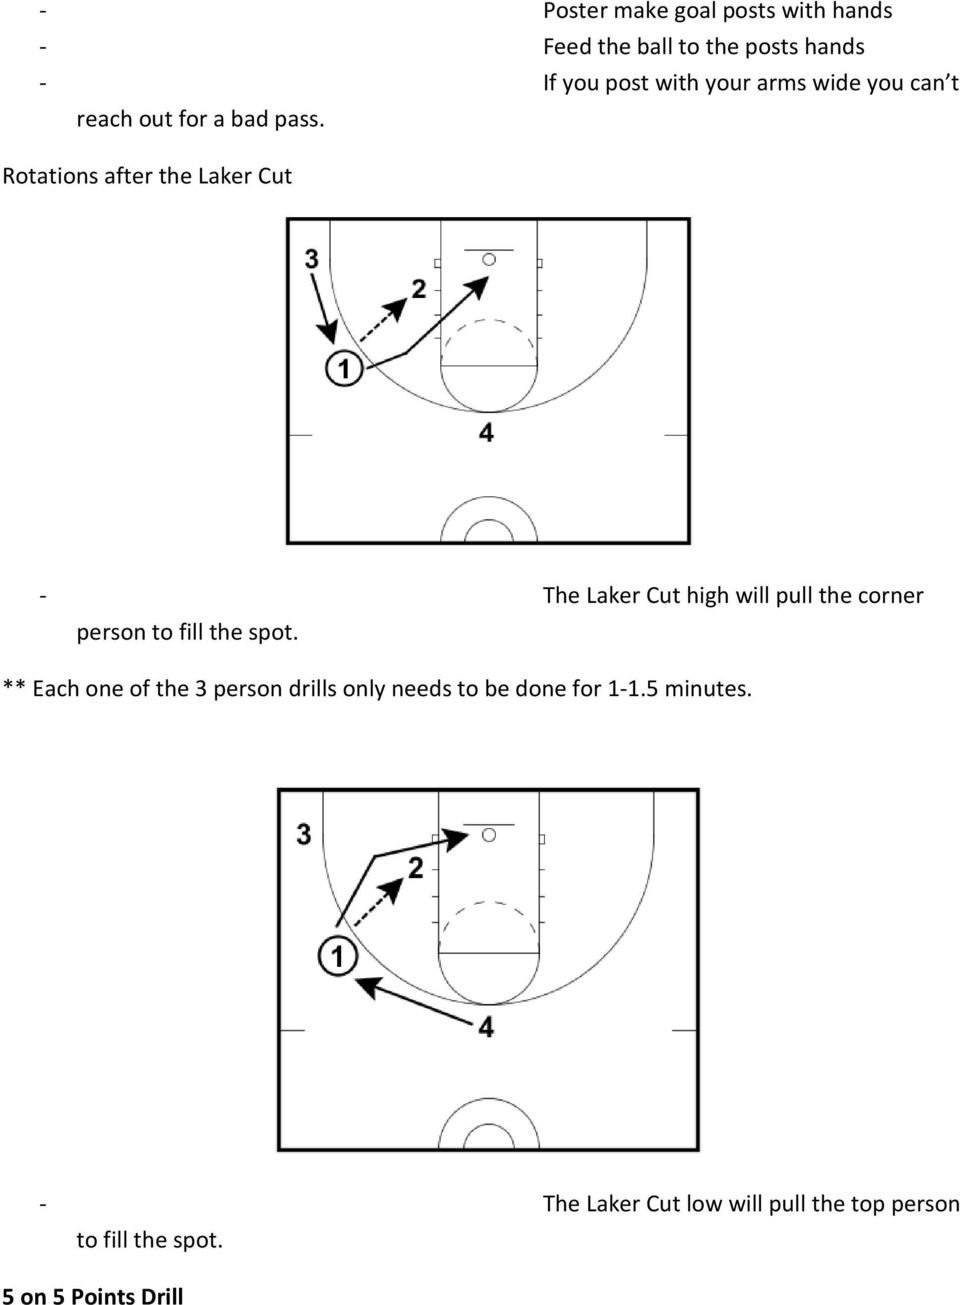 Rotations after the Laker Cut - The Laker Cut high will pull the corner person to fill the spot.